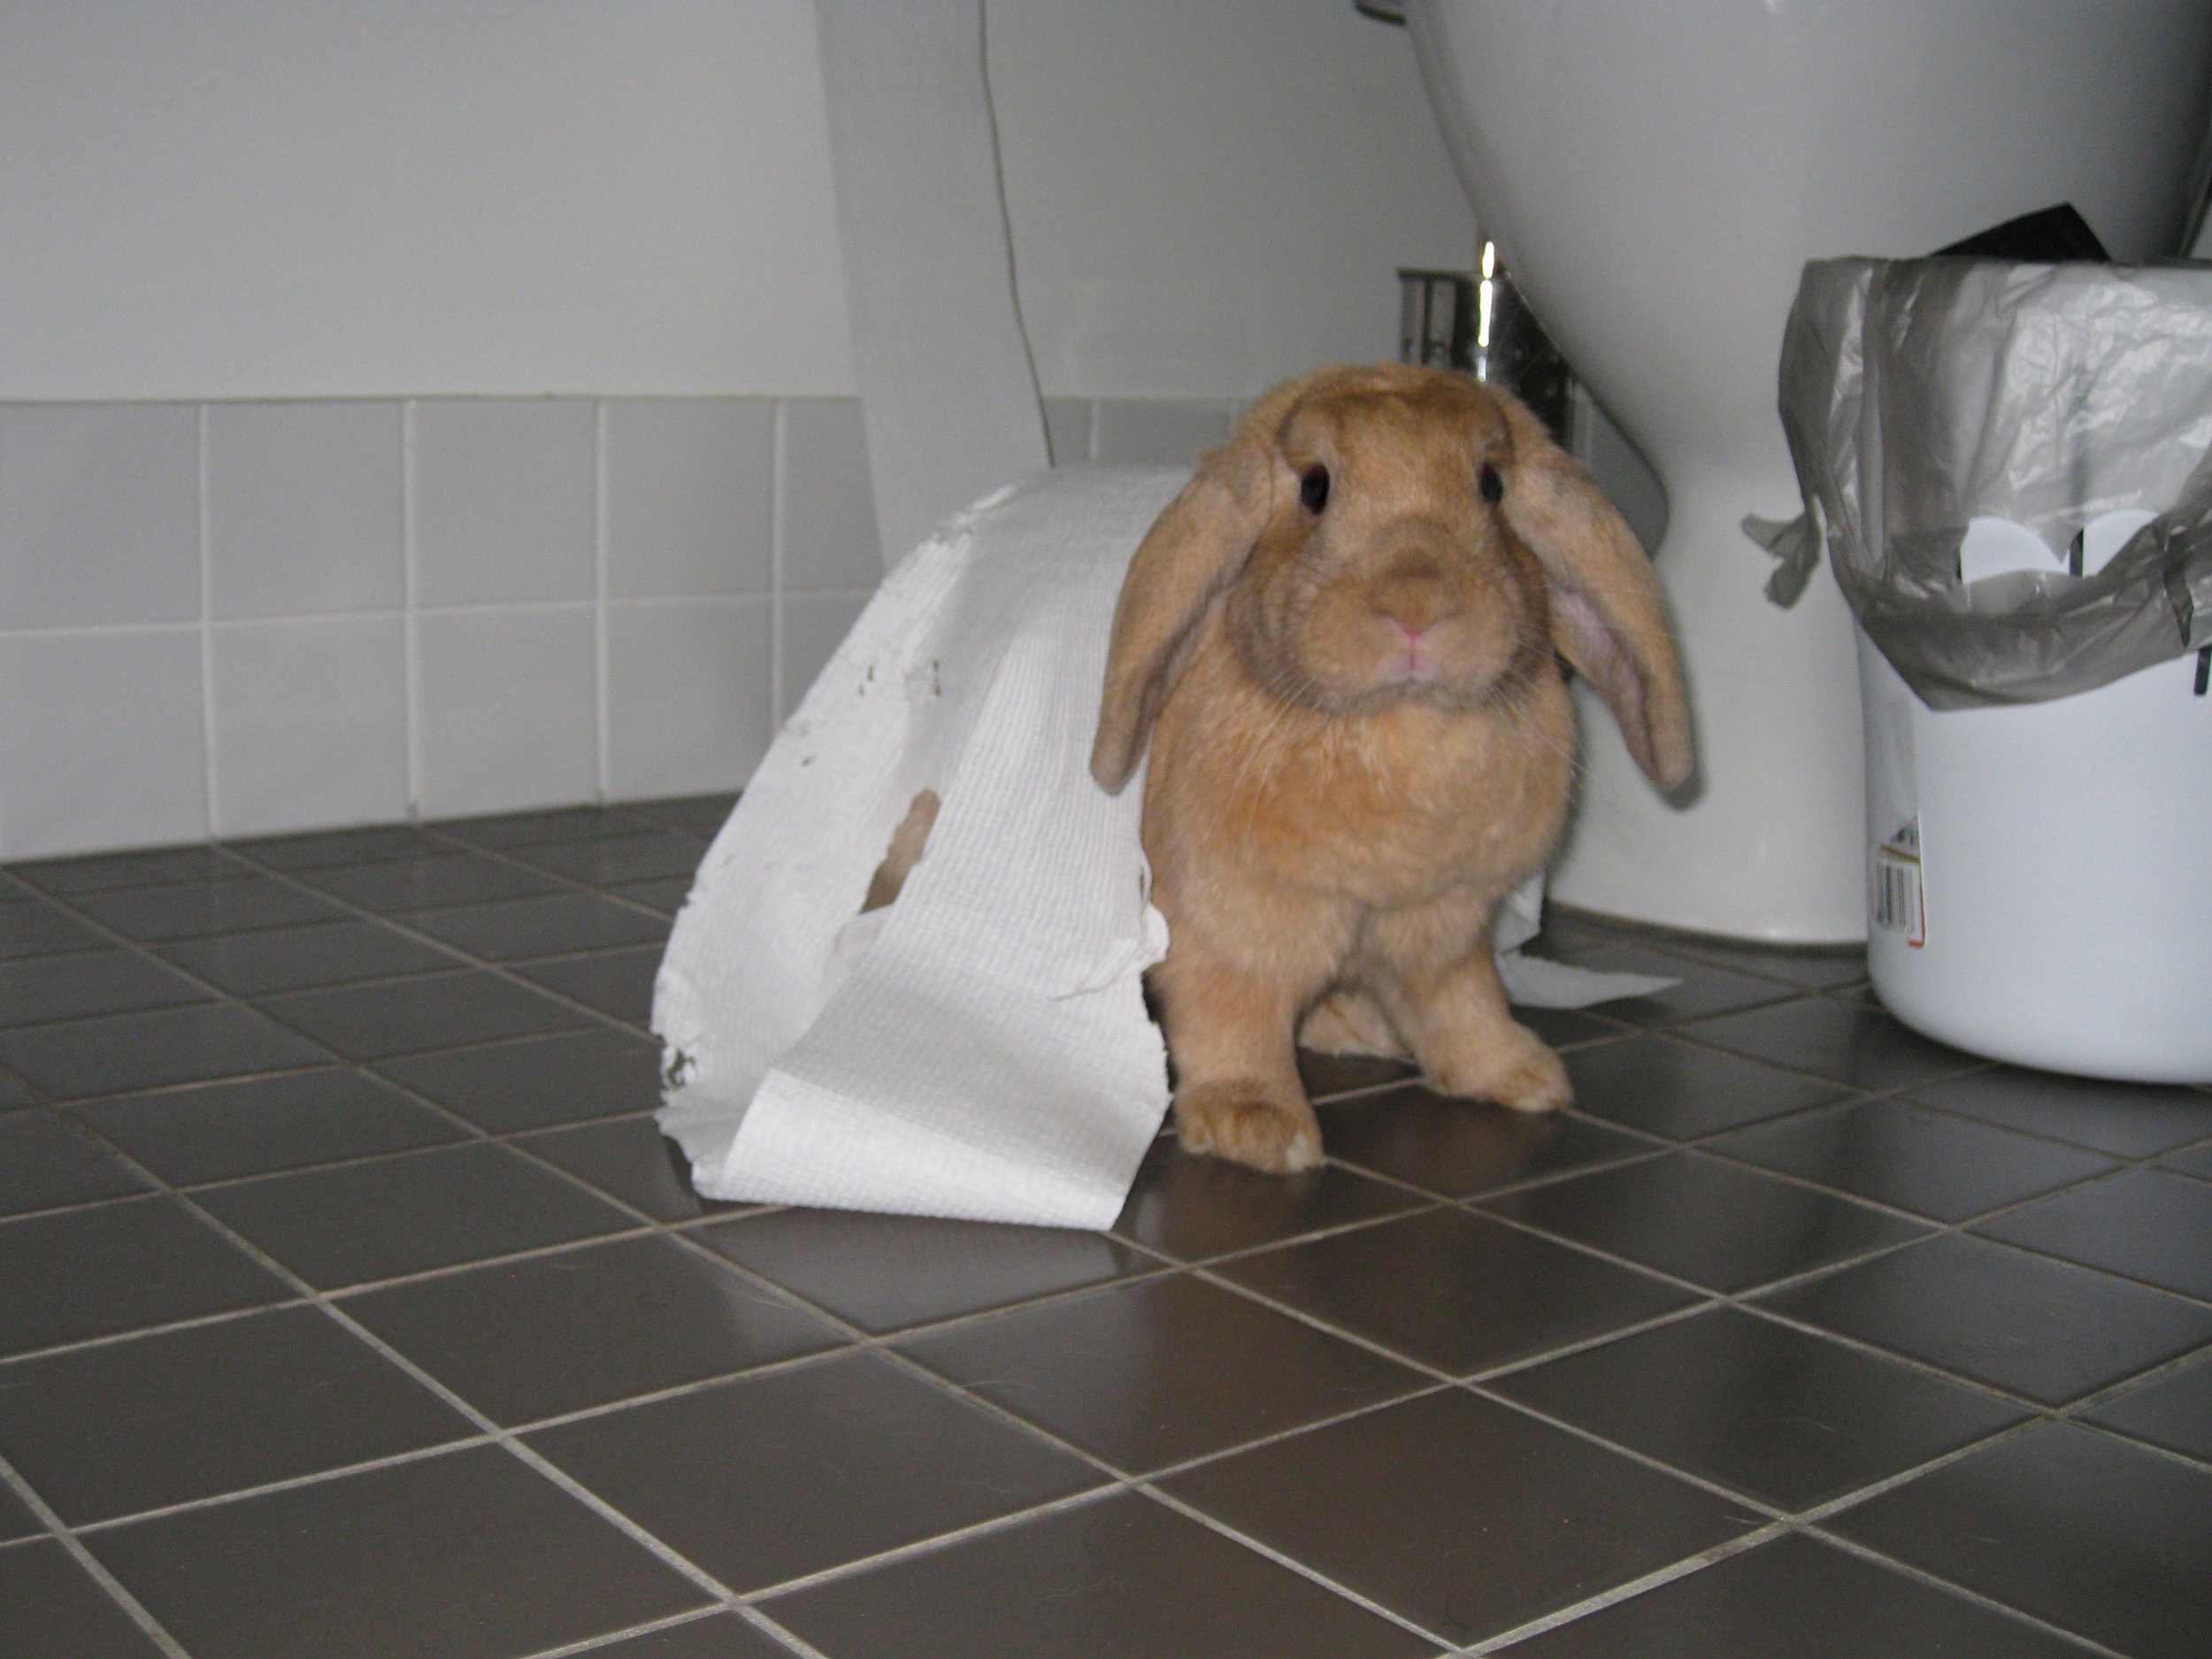 The Moment When Bunny Realizes She's Been Caught in the Act